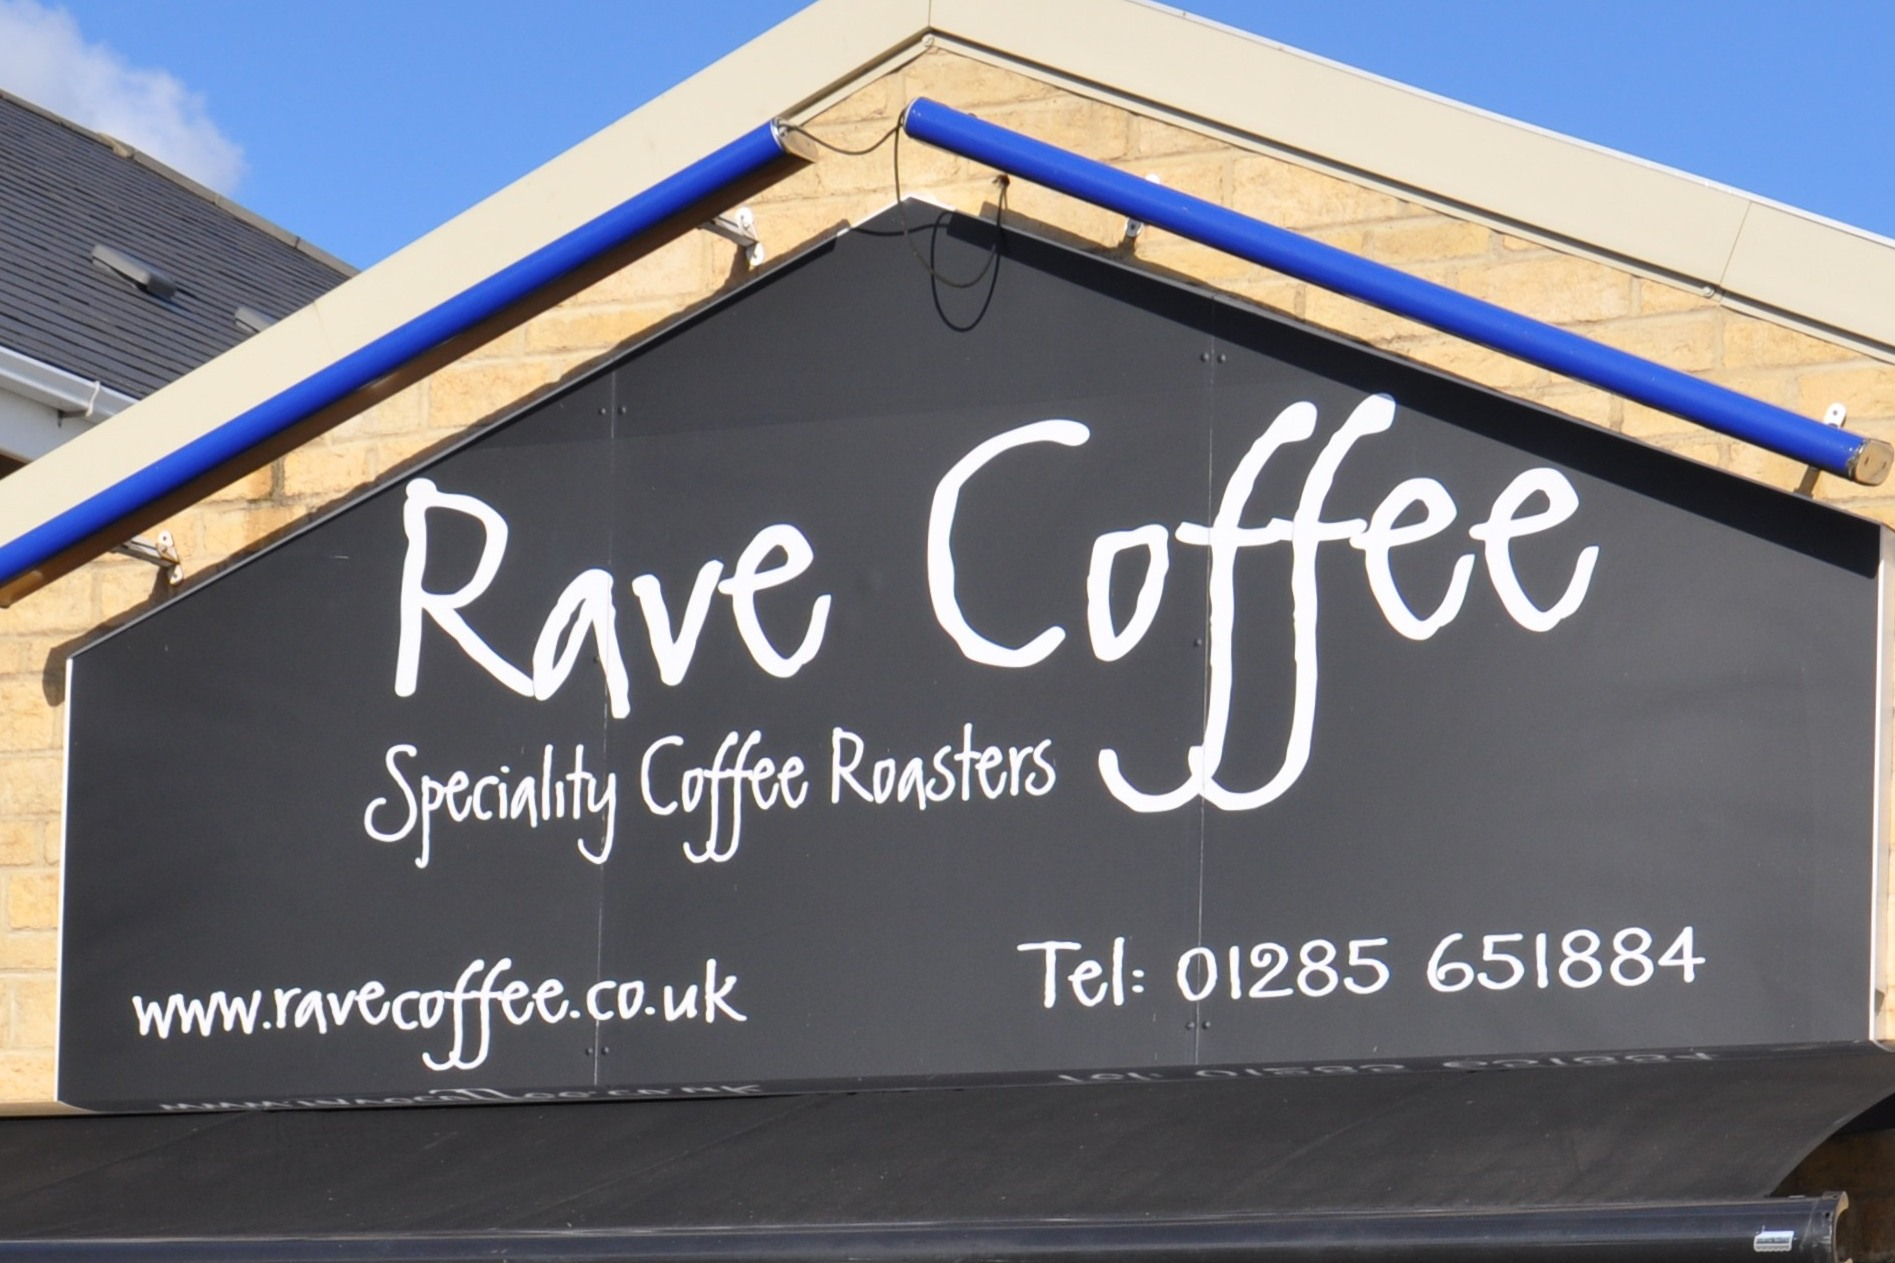 Rave Coffee, Speciality Coffee Roasters